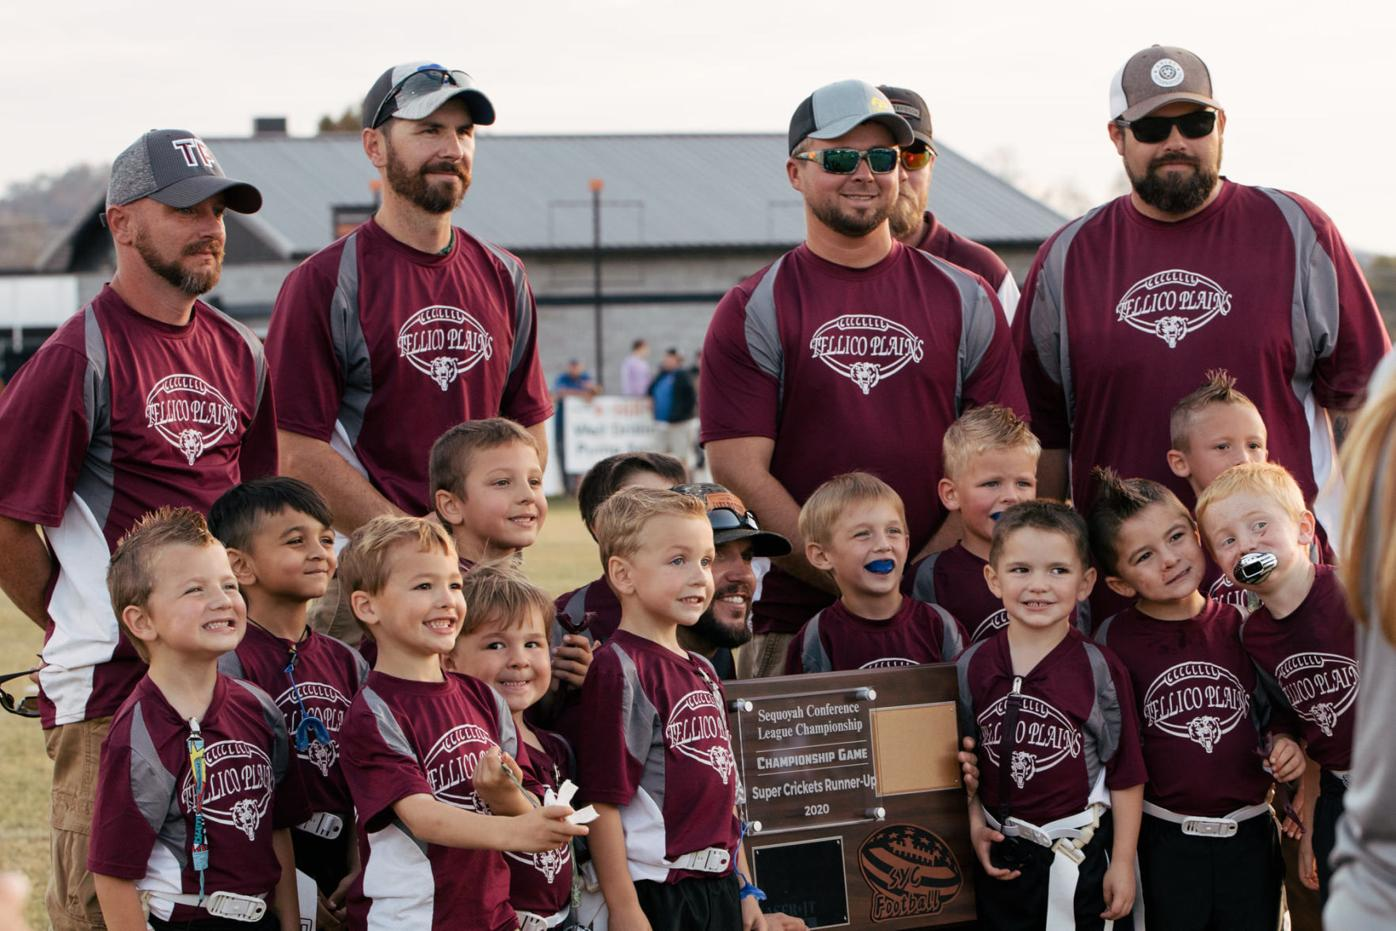 Sweetwater, Tellico Plains youth football vie for championships